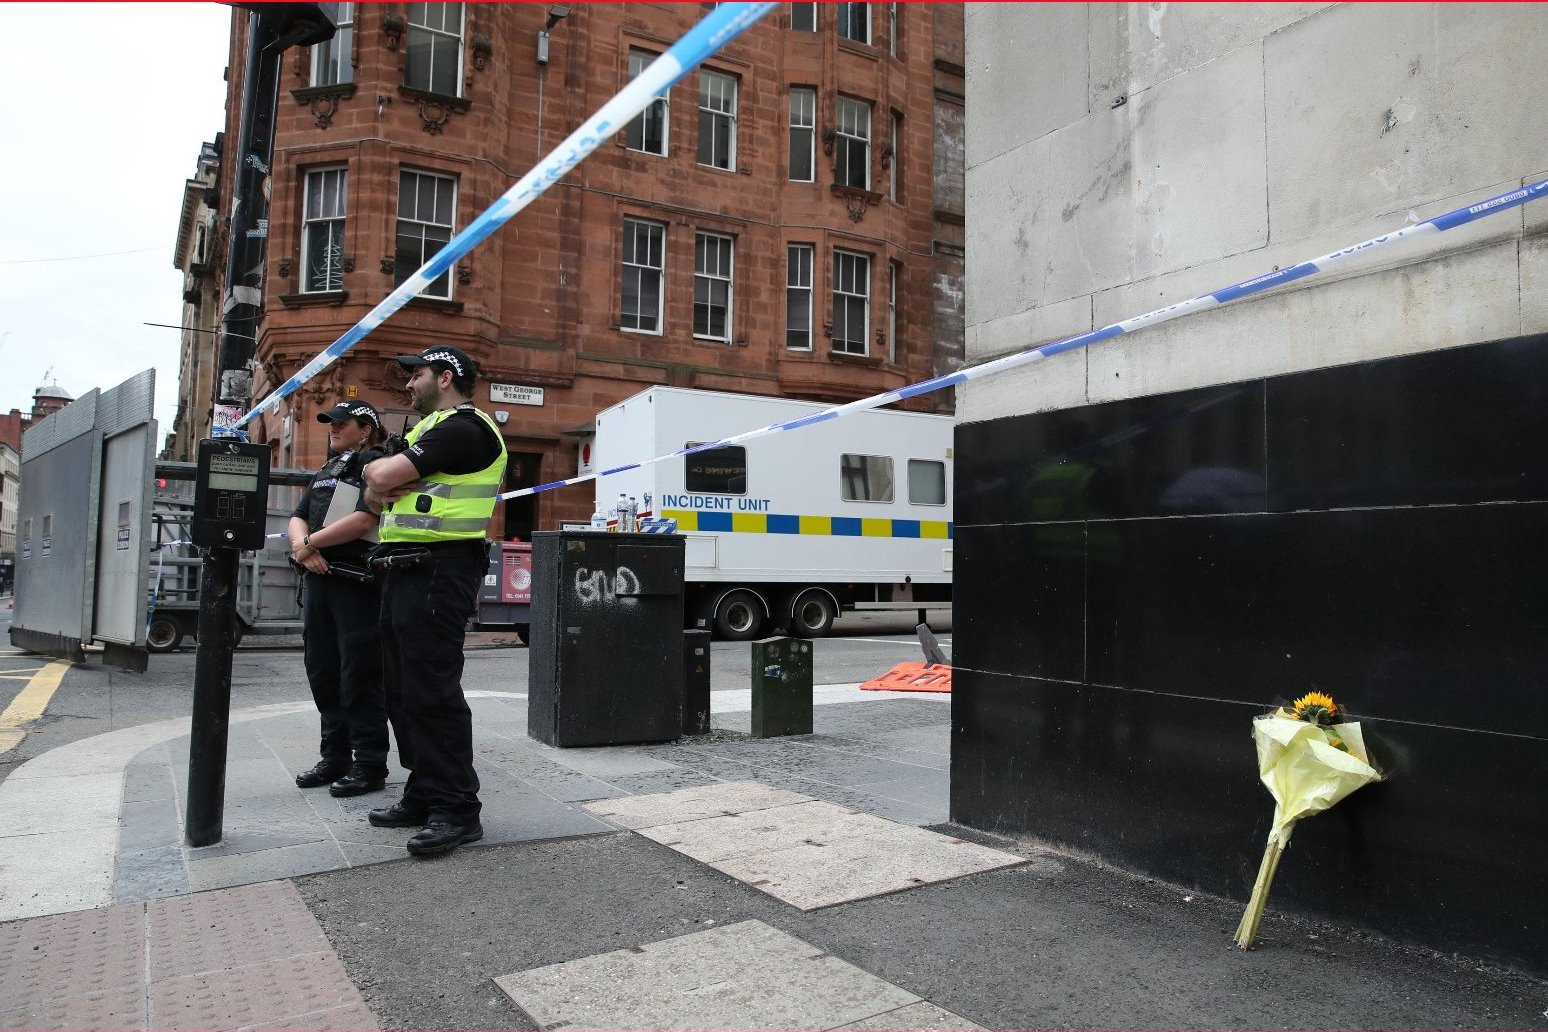 Police name Glasgow attack suspect